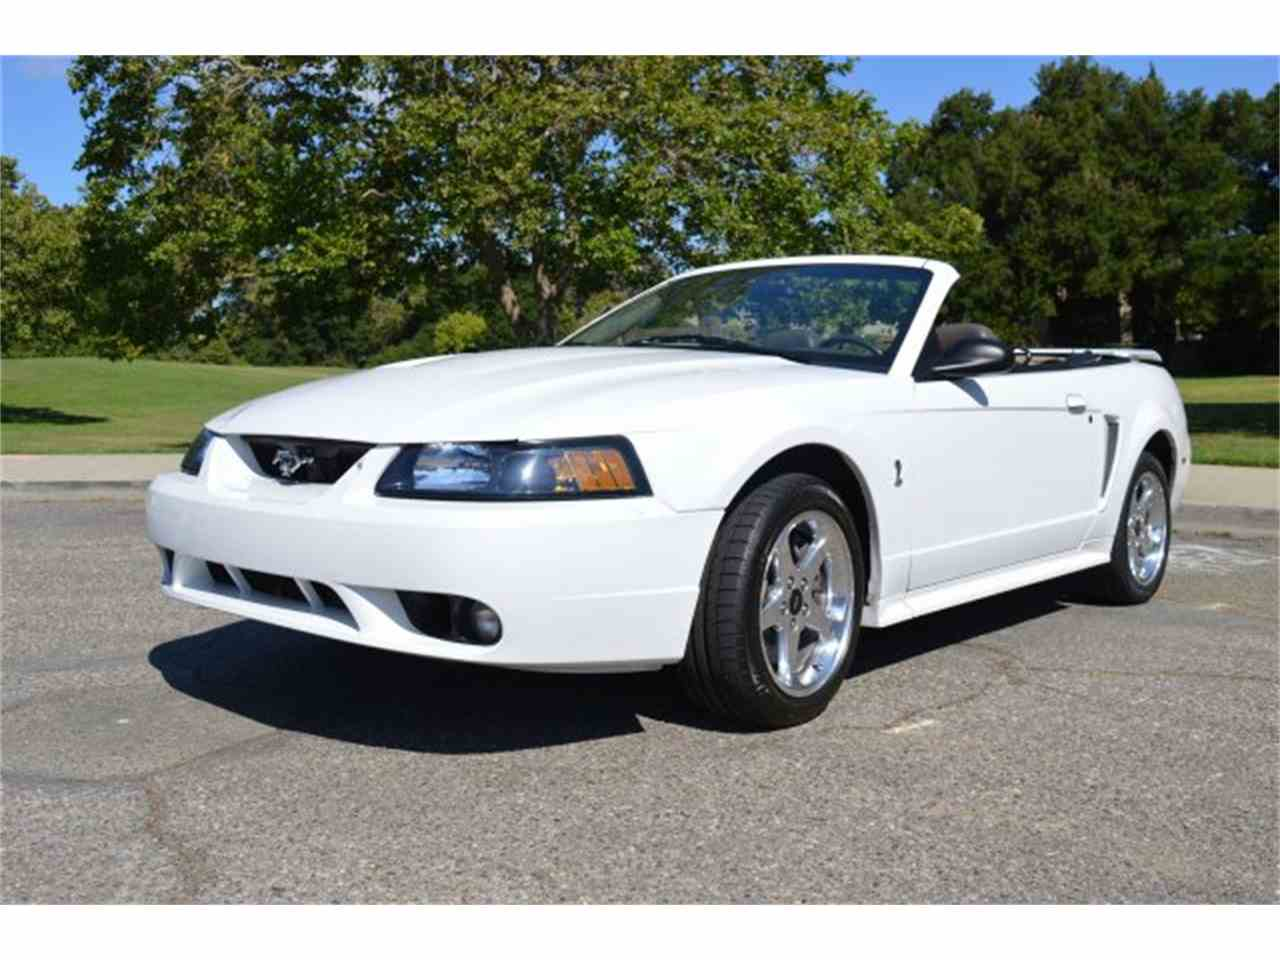 2001 ford mustang svt cobra convertible for sale for 2001 ford mustang convertible top motor